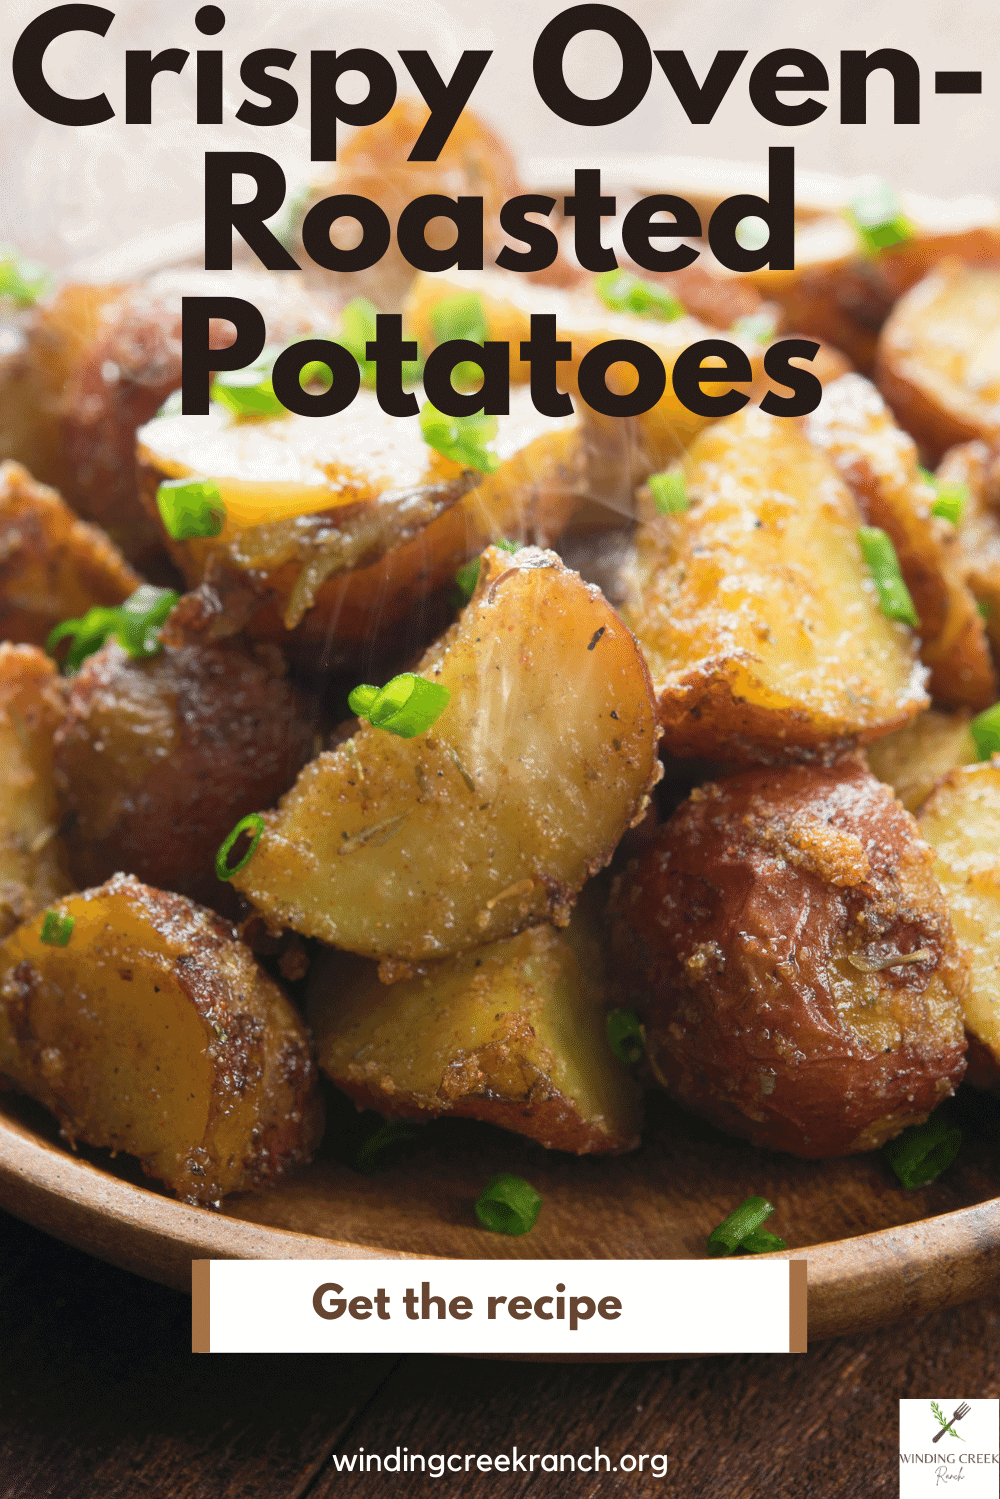 Ultra crispy oven-roasted potatoes turn out perfectly seasoned and crispy, so easy to make, serve with sea salt and parsley